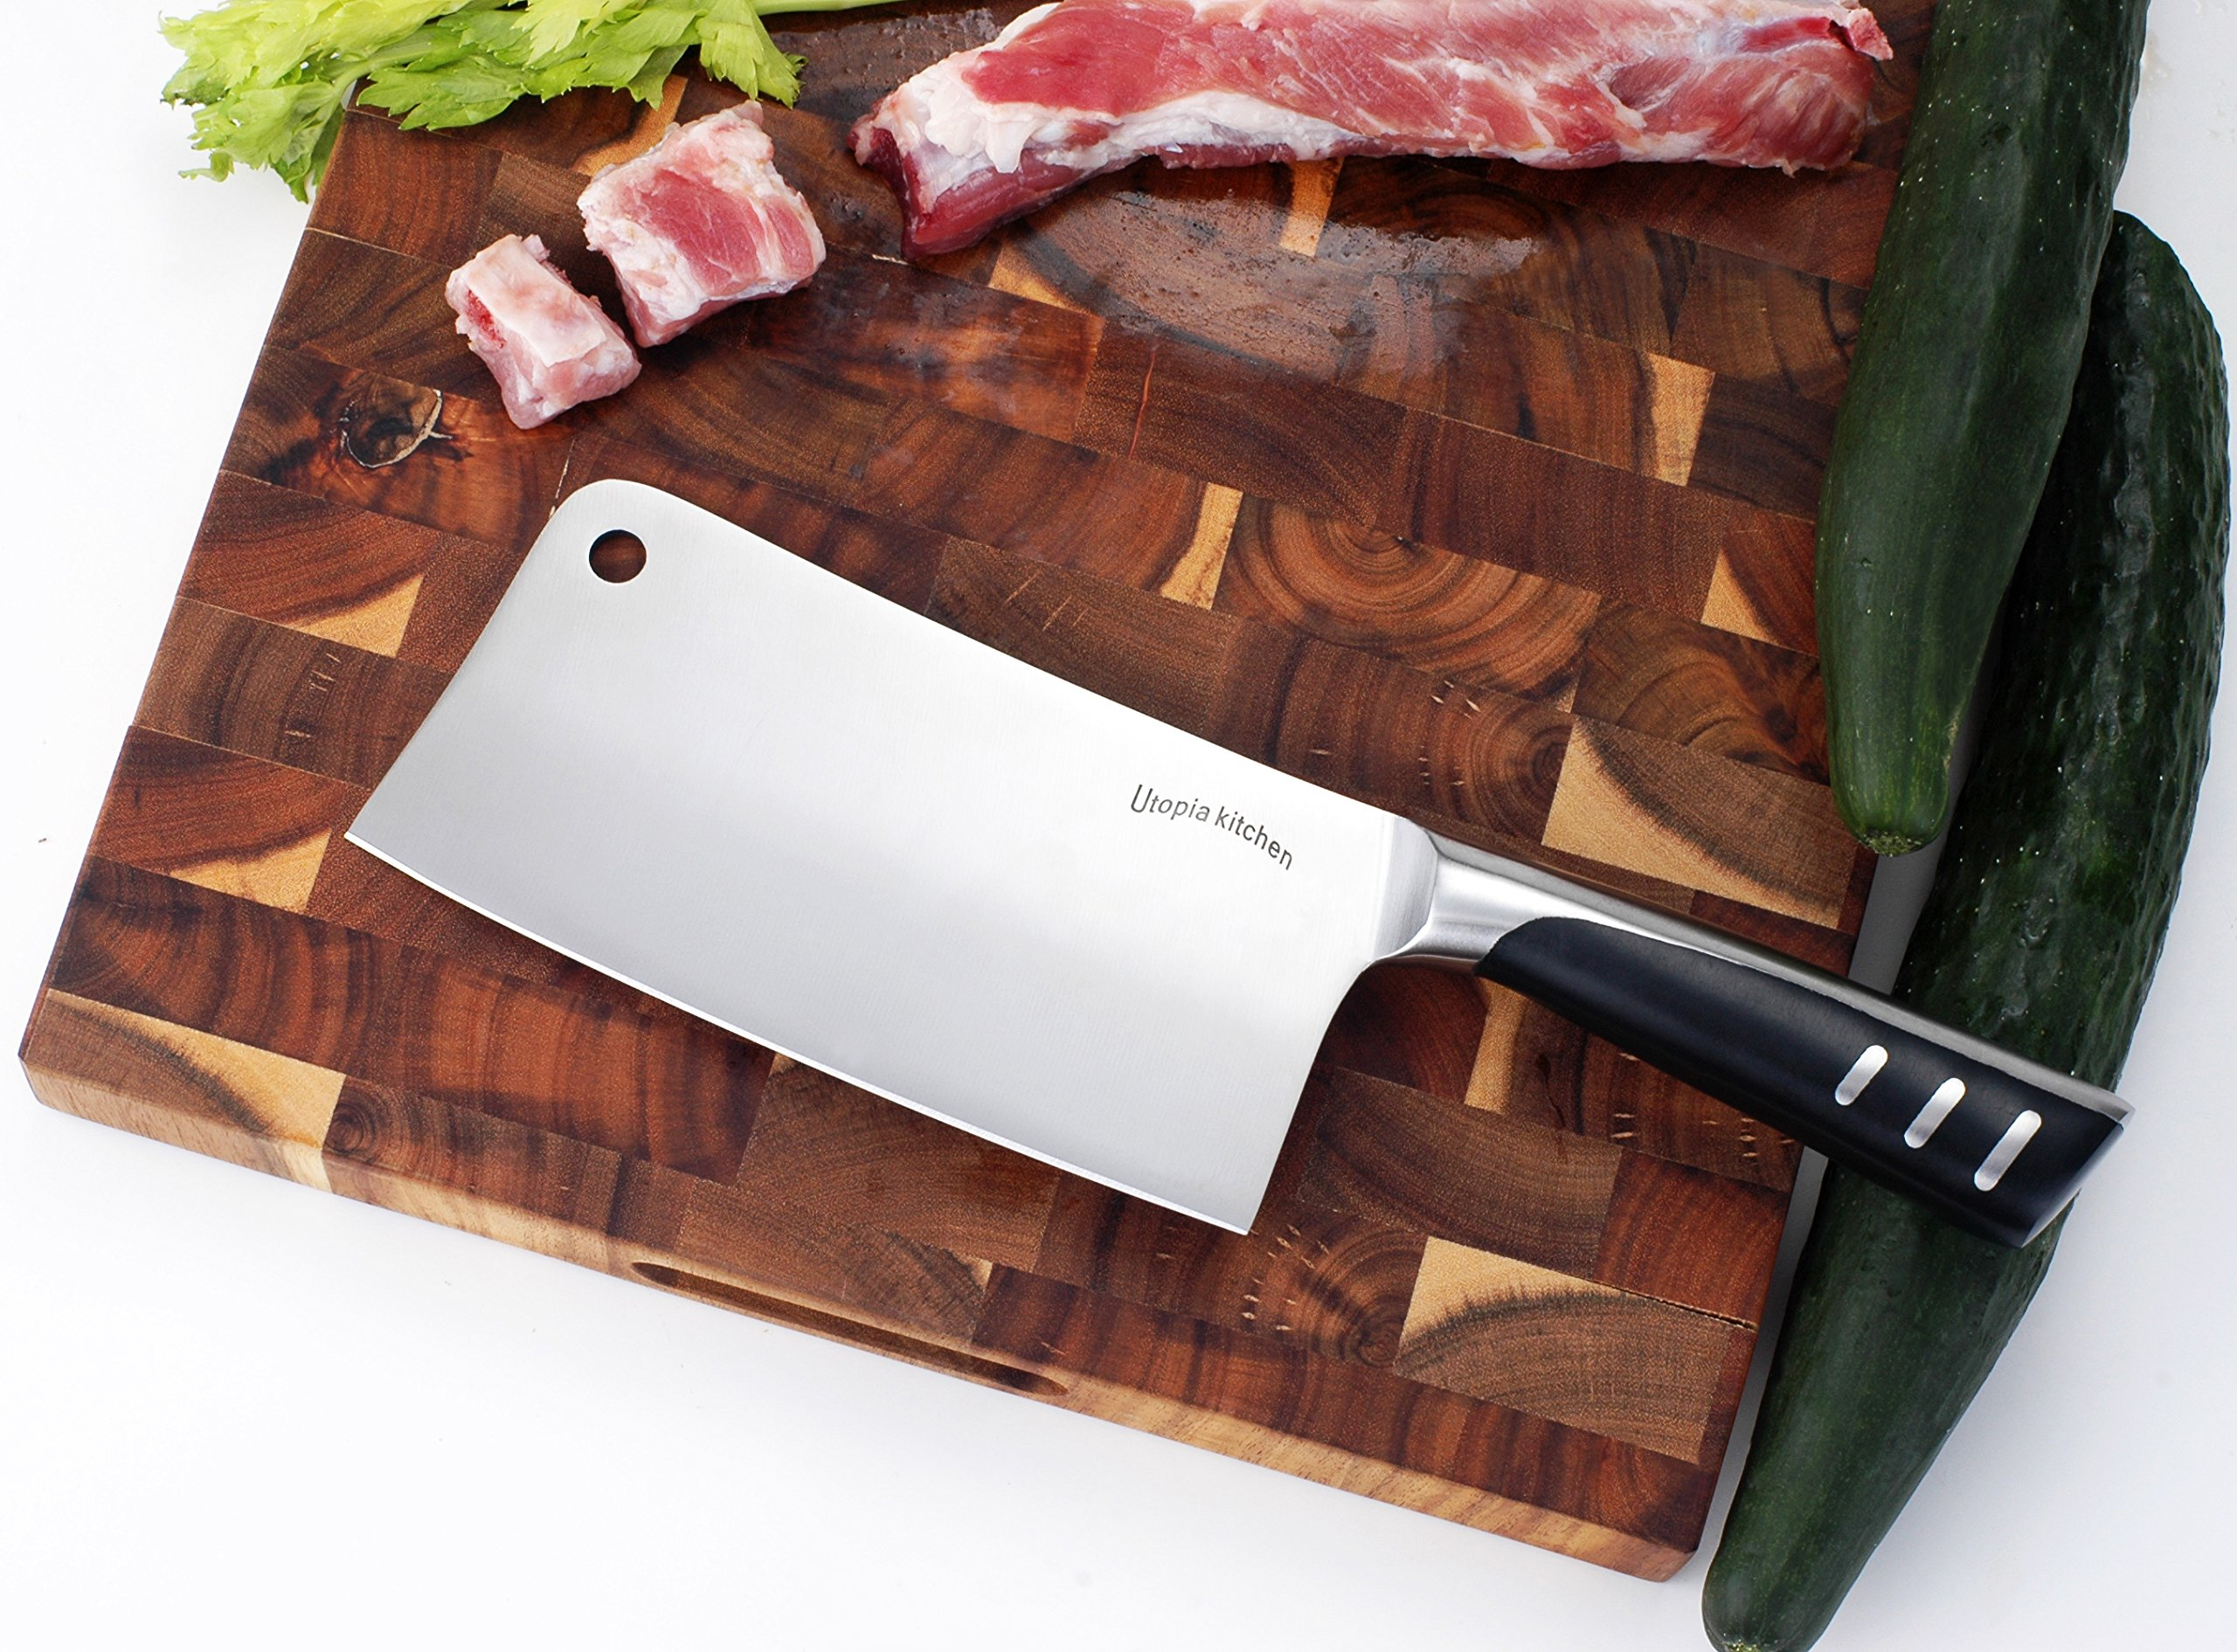 7 Inch Stainless Steel Chopper - Cleaver - Butcher Knife - Multipurpose Use for Home Kitchen or Restaurant by Utopia Kitchen by Utopia Kitchen (Image #3)